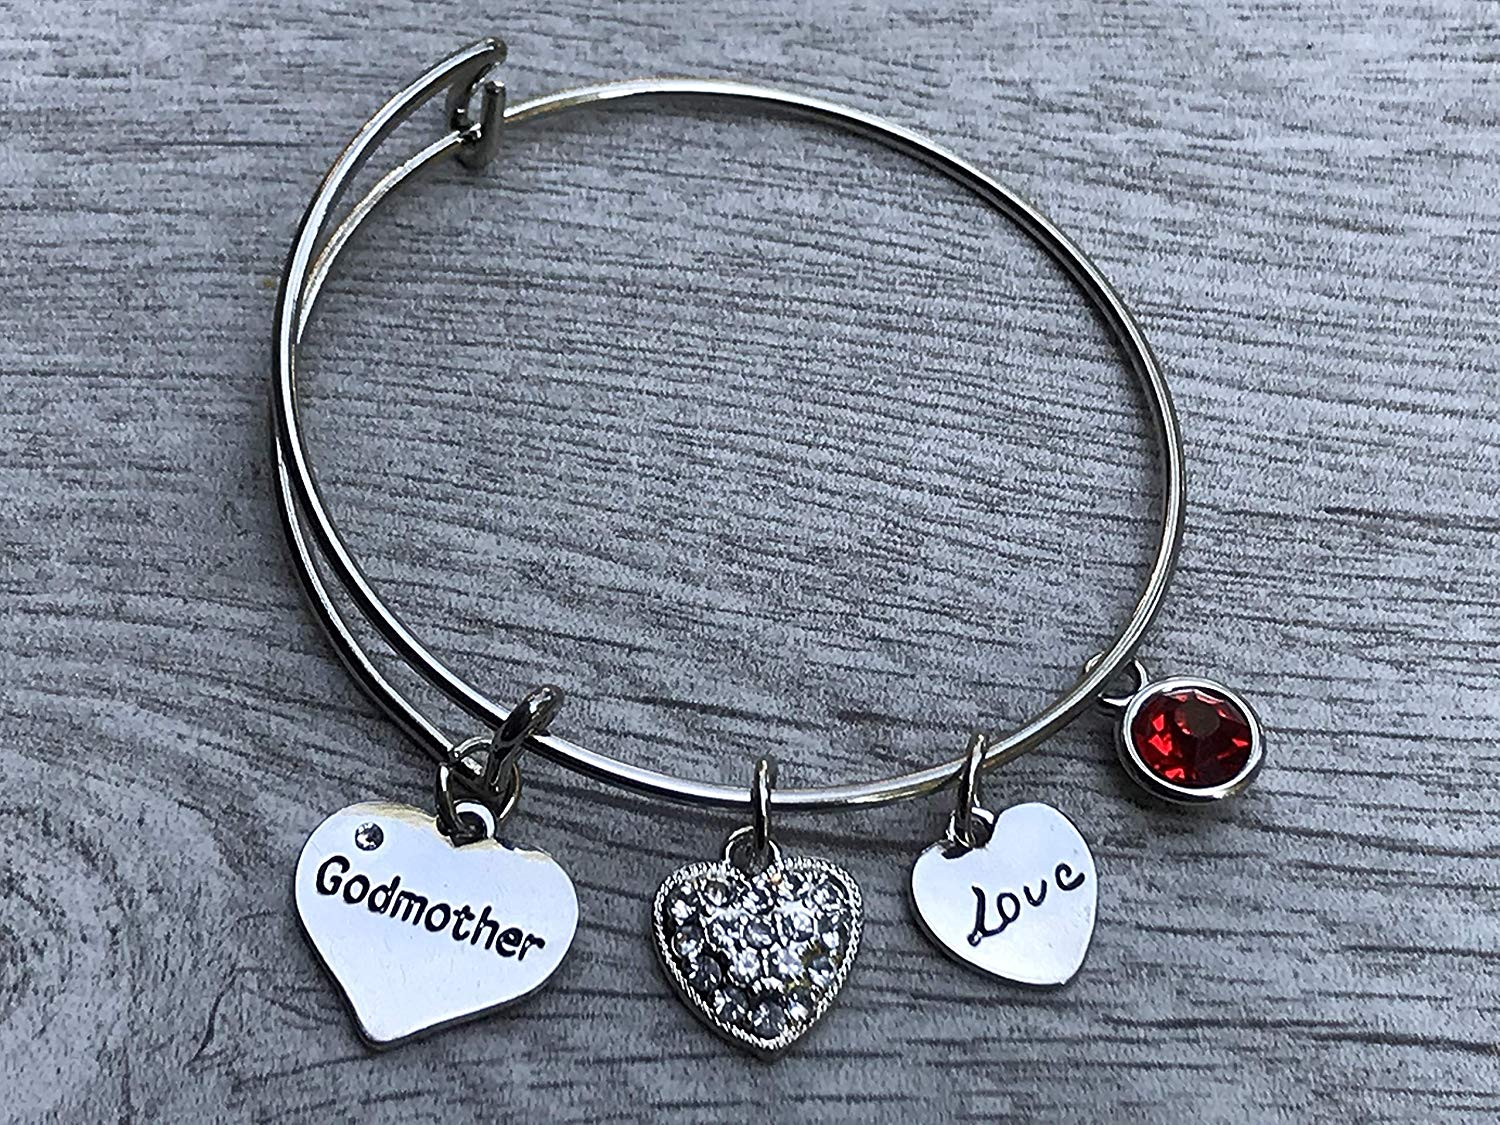 Wind and Fire Godmother Filigree Heart Silver Medal Charm Bangle